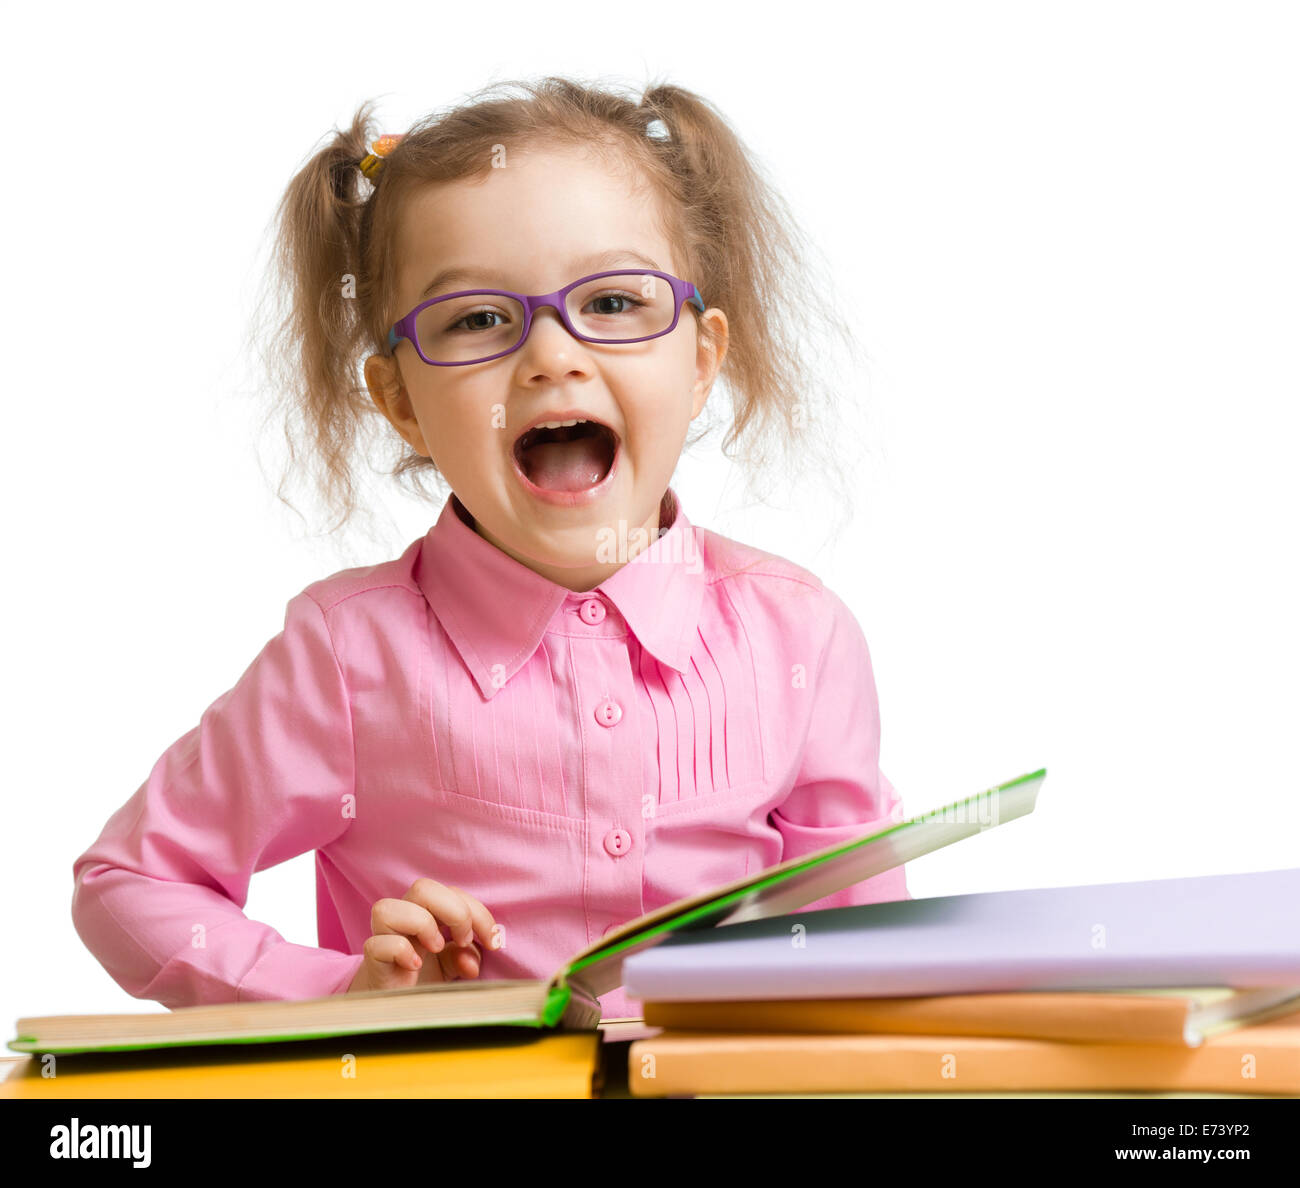 Funny kid girl in glasses with books speaking something isolated on white - Stock Image